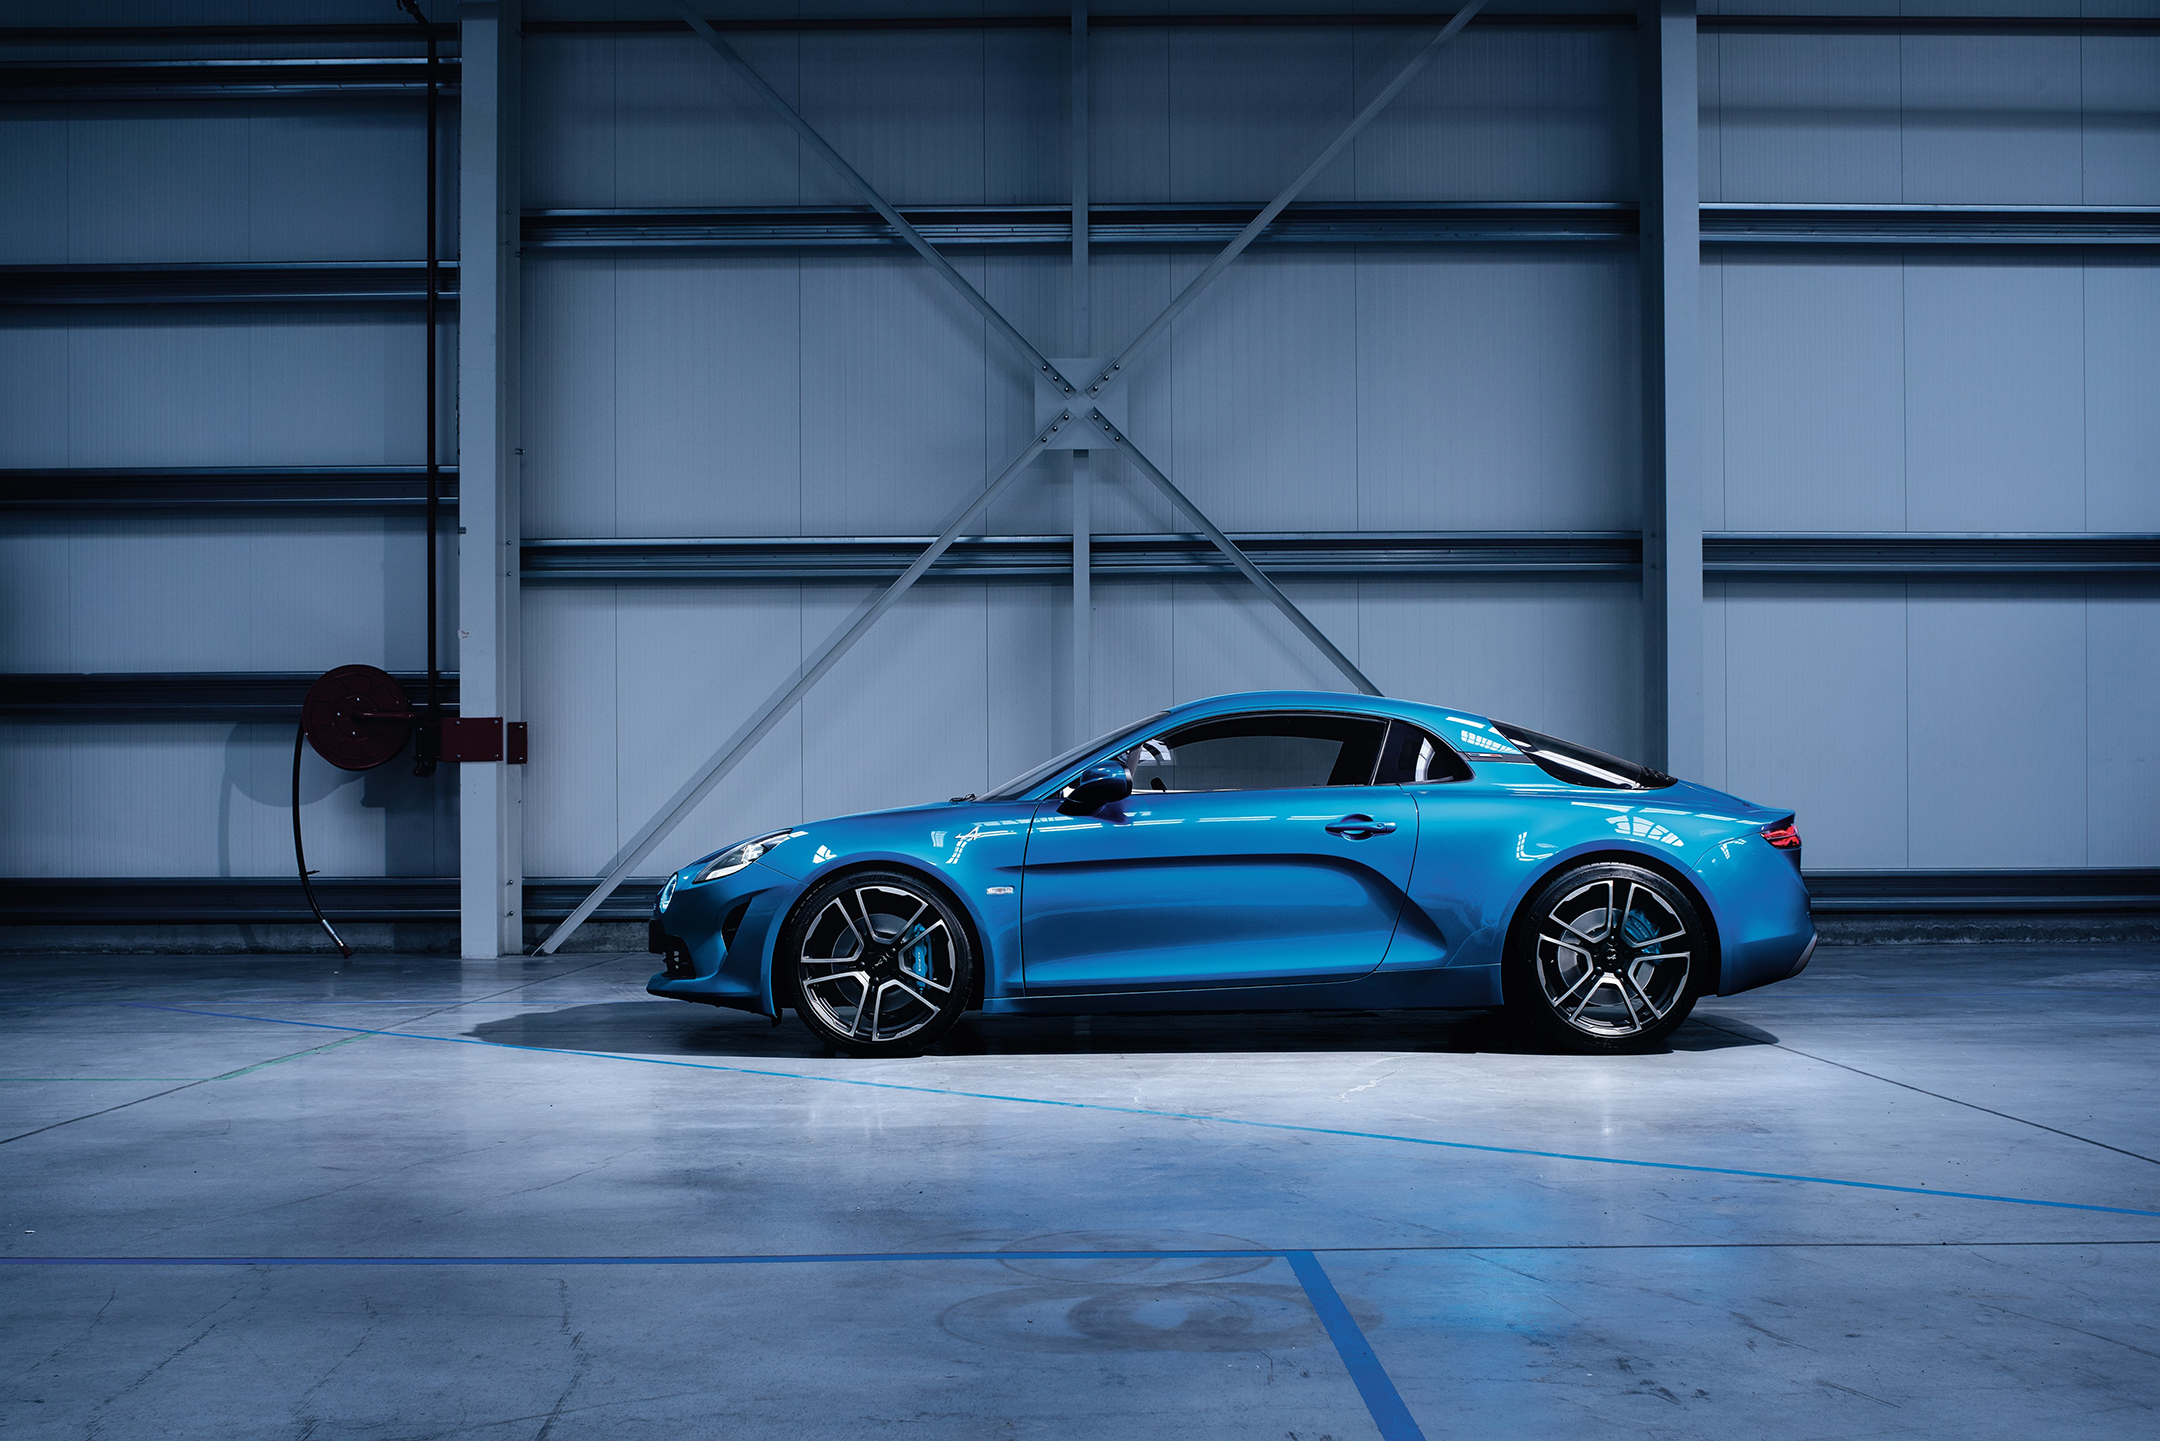 Alpine A110 - 2017 - side-face / profil